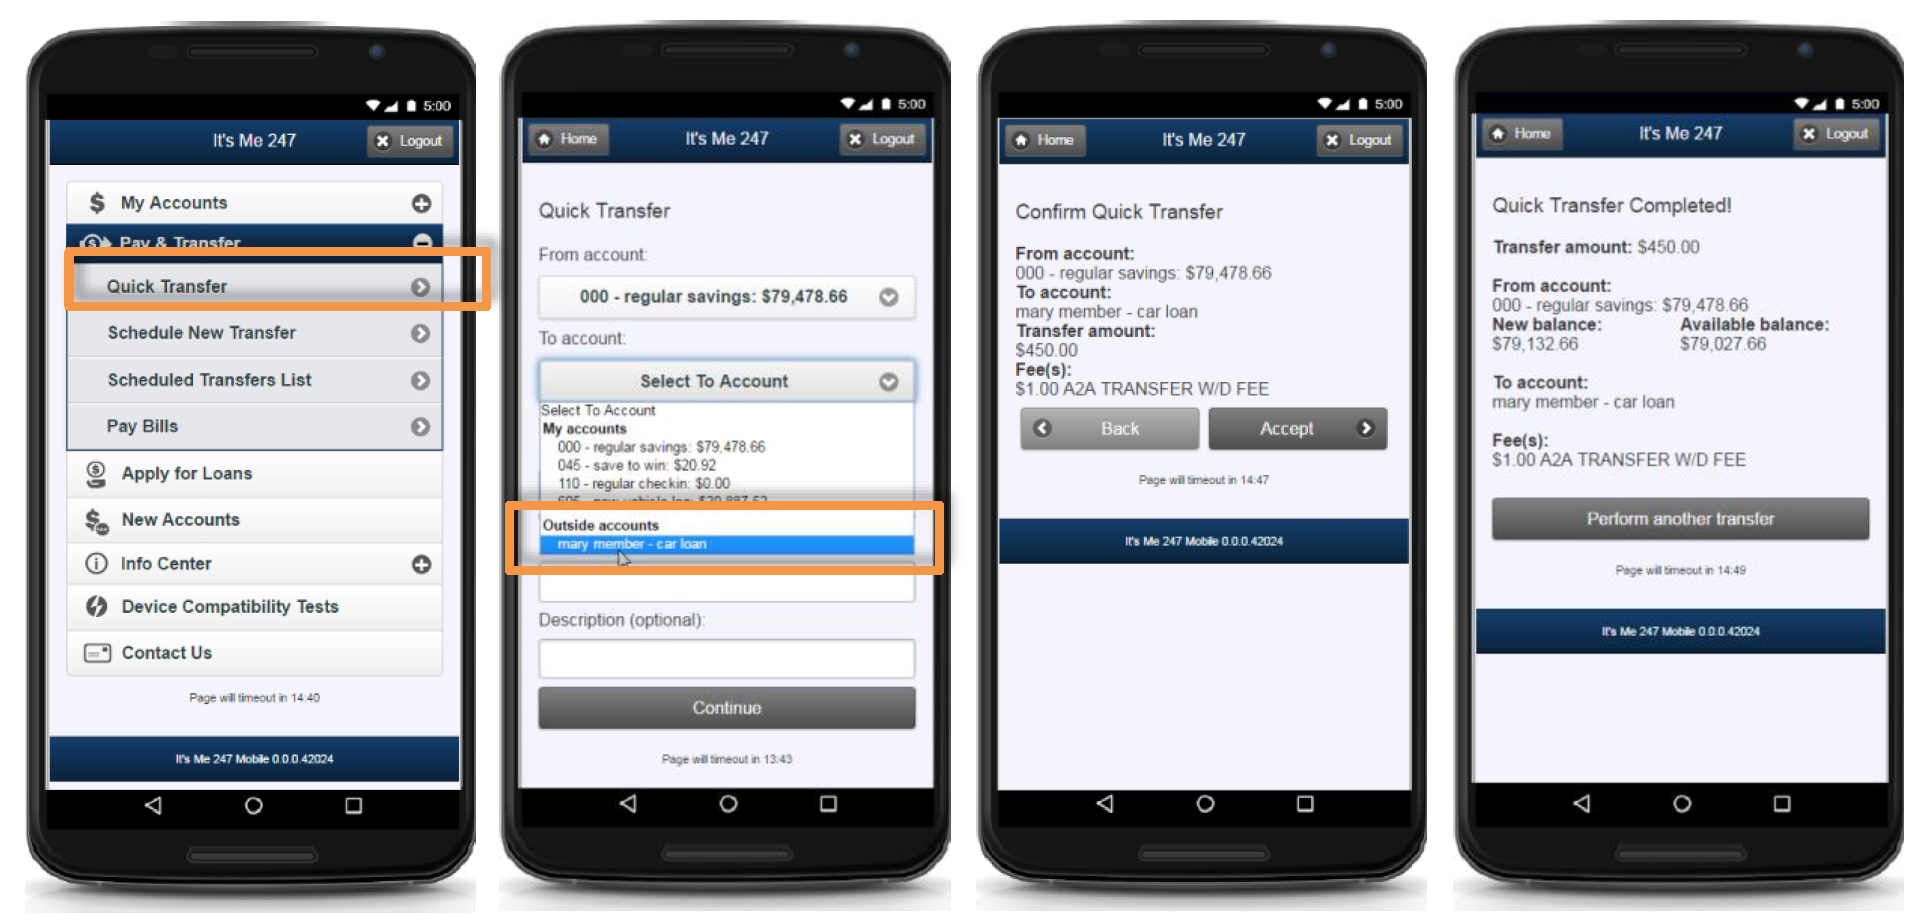 How to Complete A2A Transfers Using the Mobile App